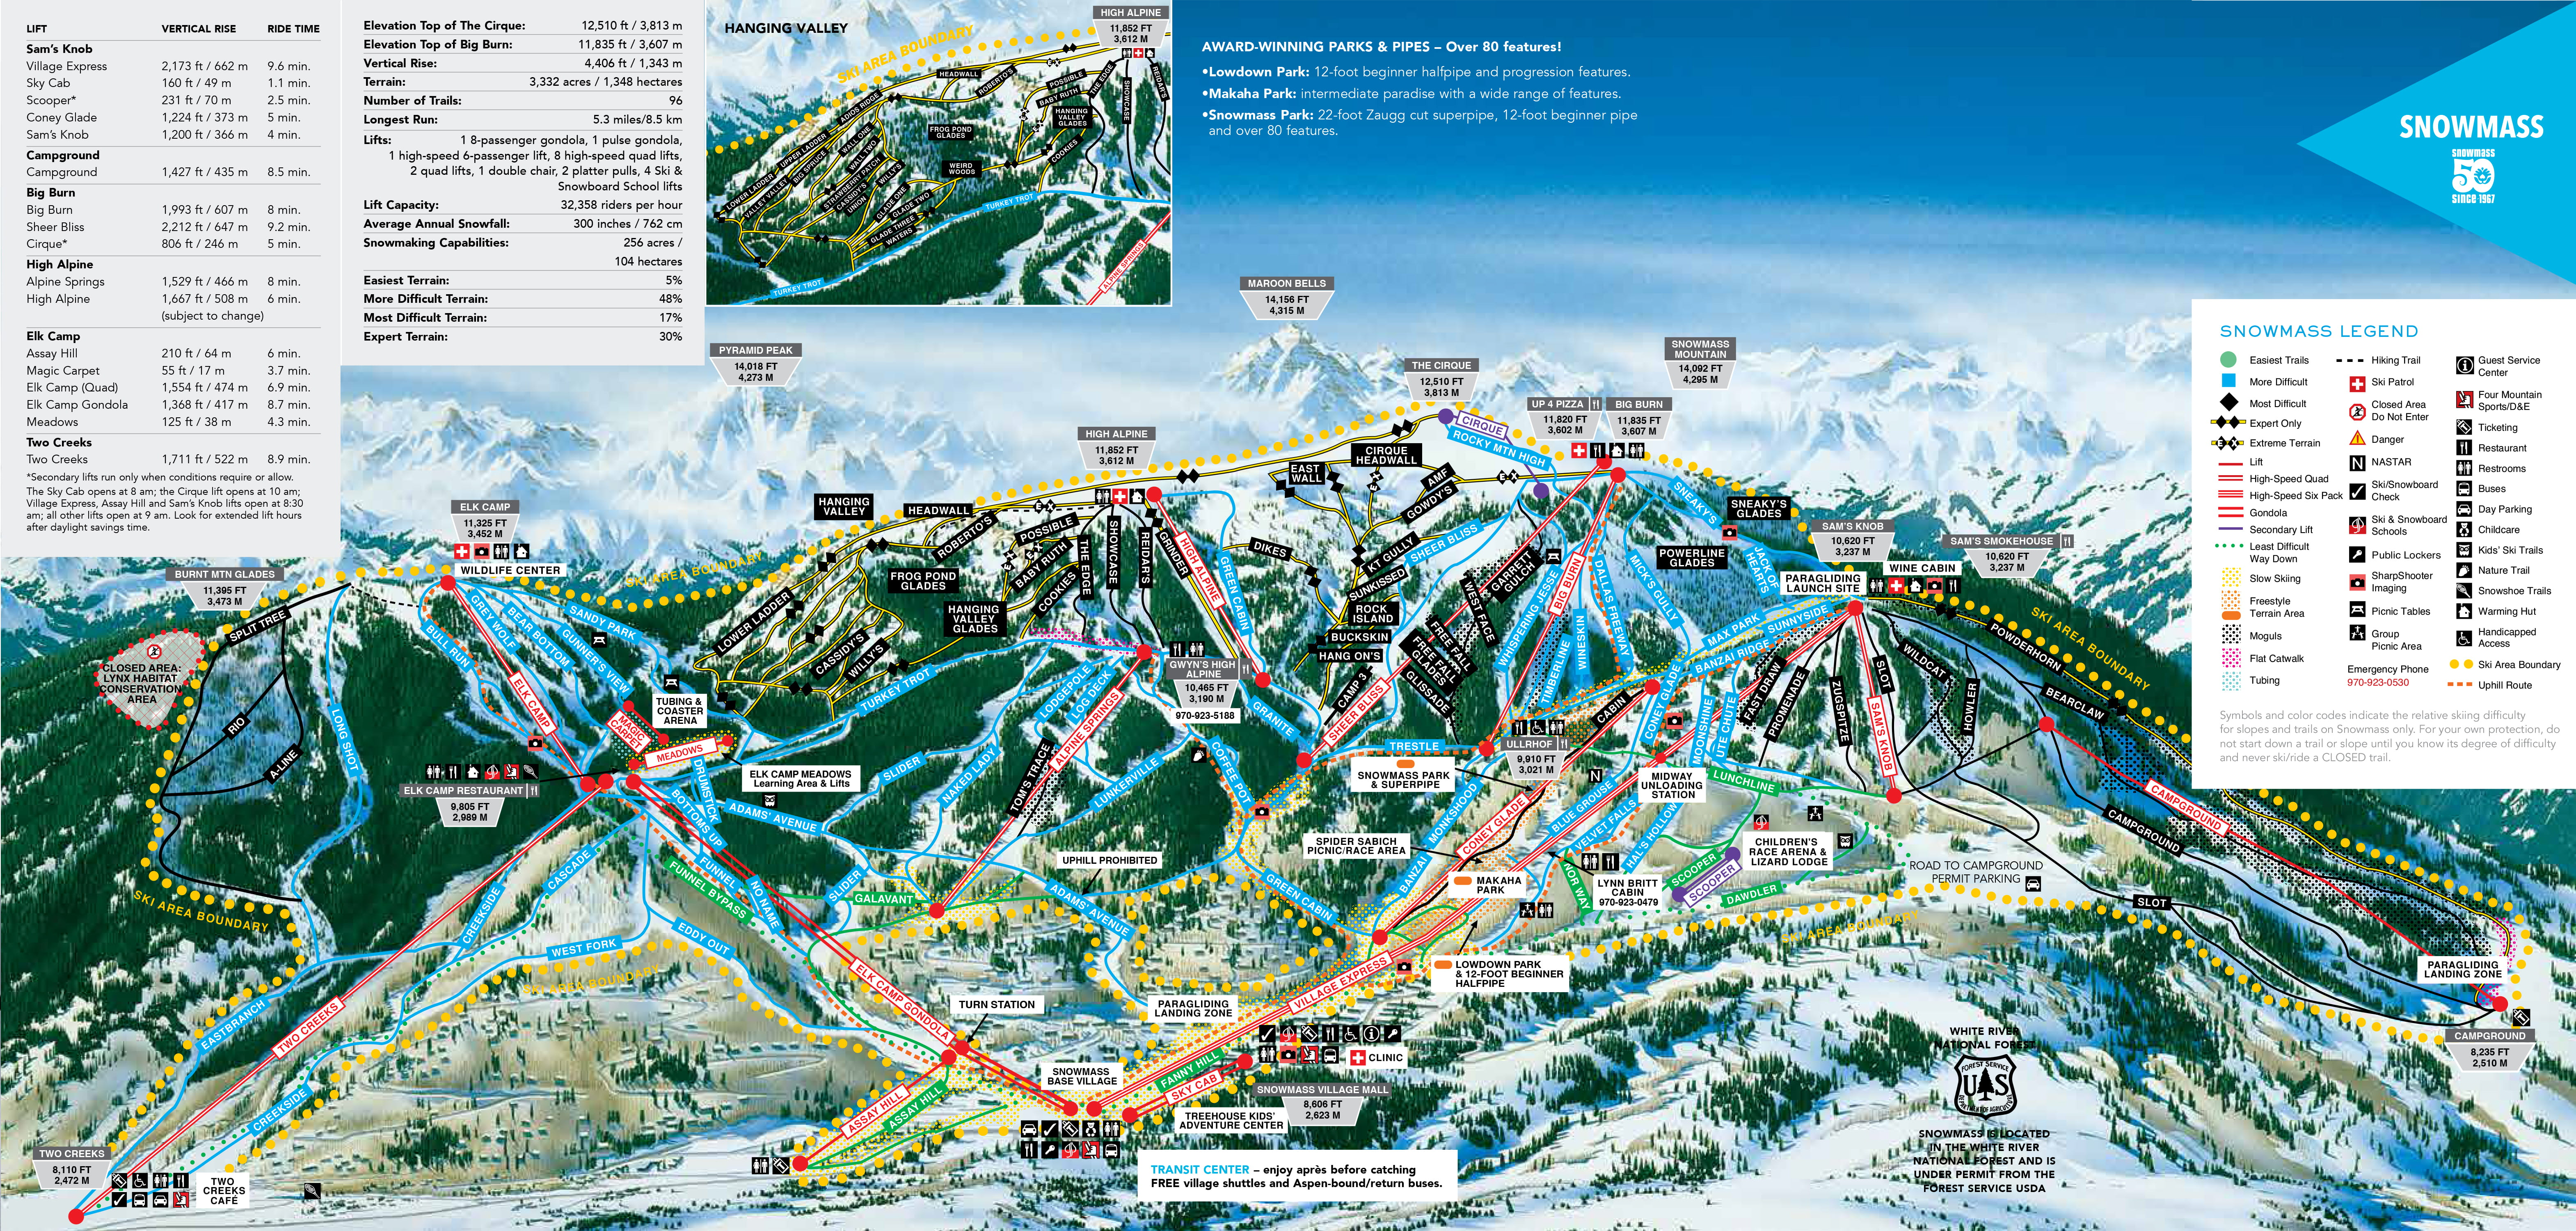 Snowmass Winter And Summer Trail Maps - Vintage ski maps